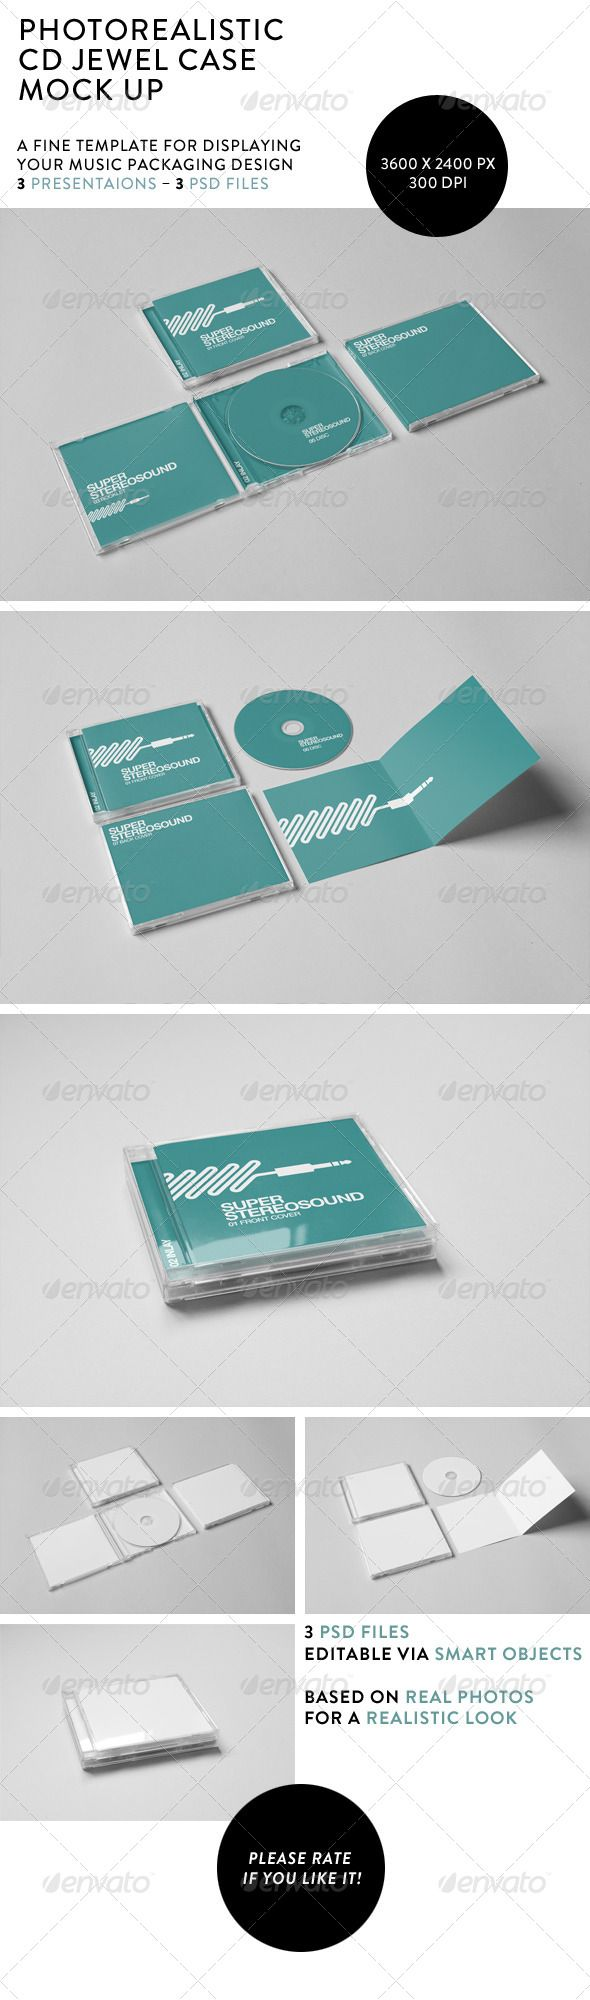 Realistic Cd Jewel Case MockUp  Mockup Packaging Design And Psd